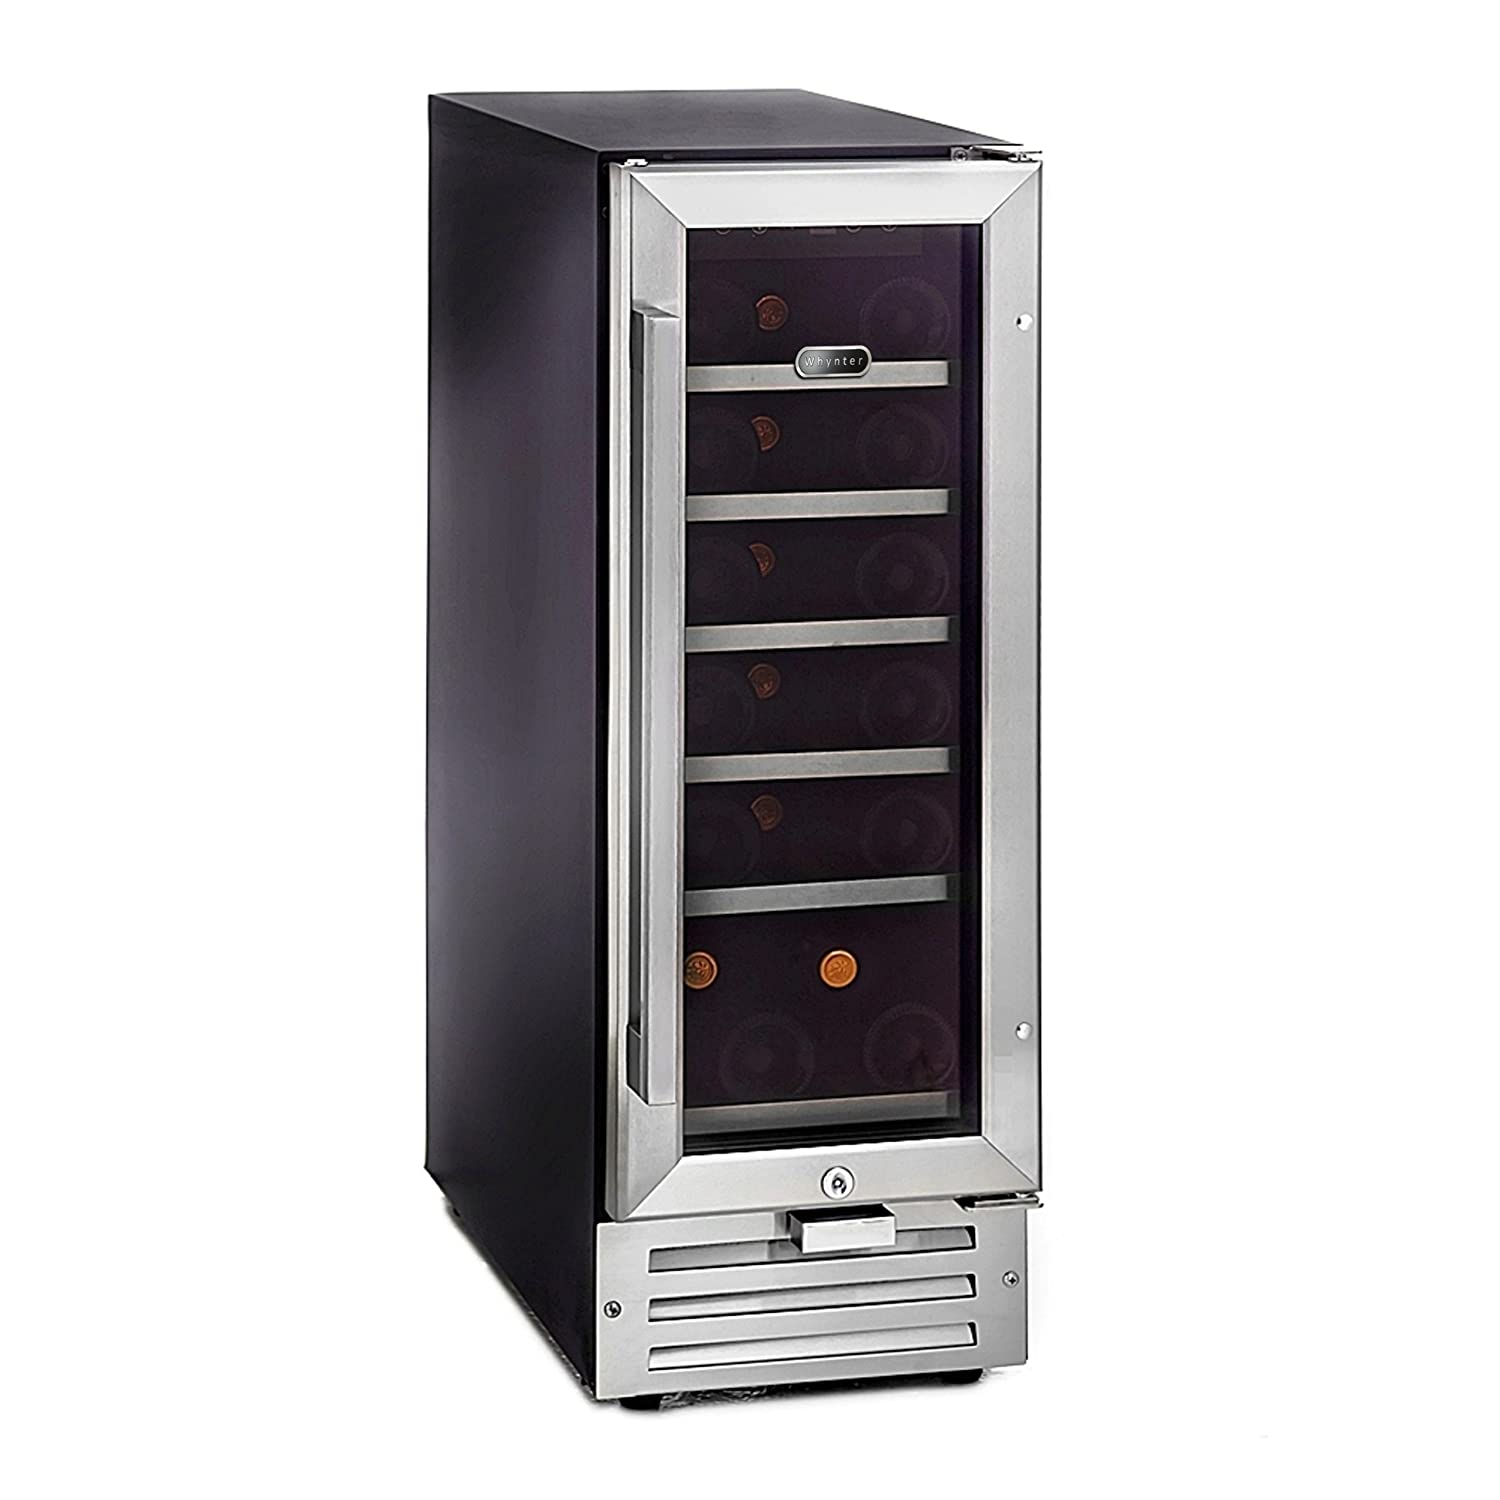 Amazon.com: Whynter BWR-18SD 18 Bottle Built-In Wine Refrigerator:  Appliances